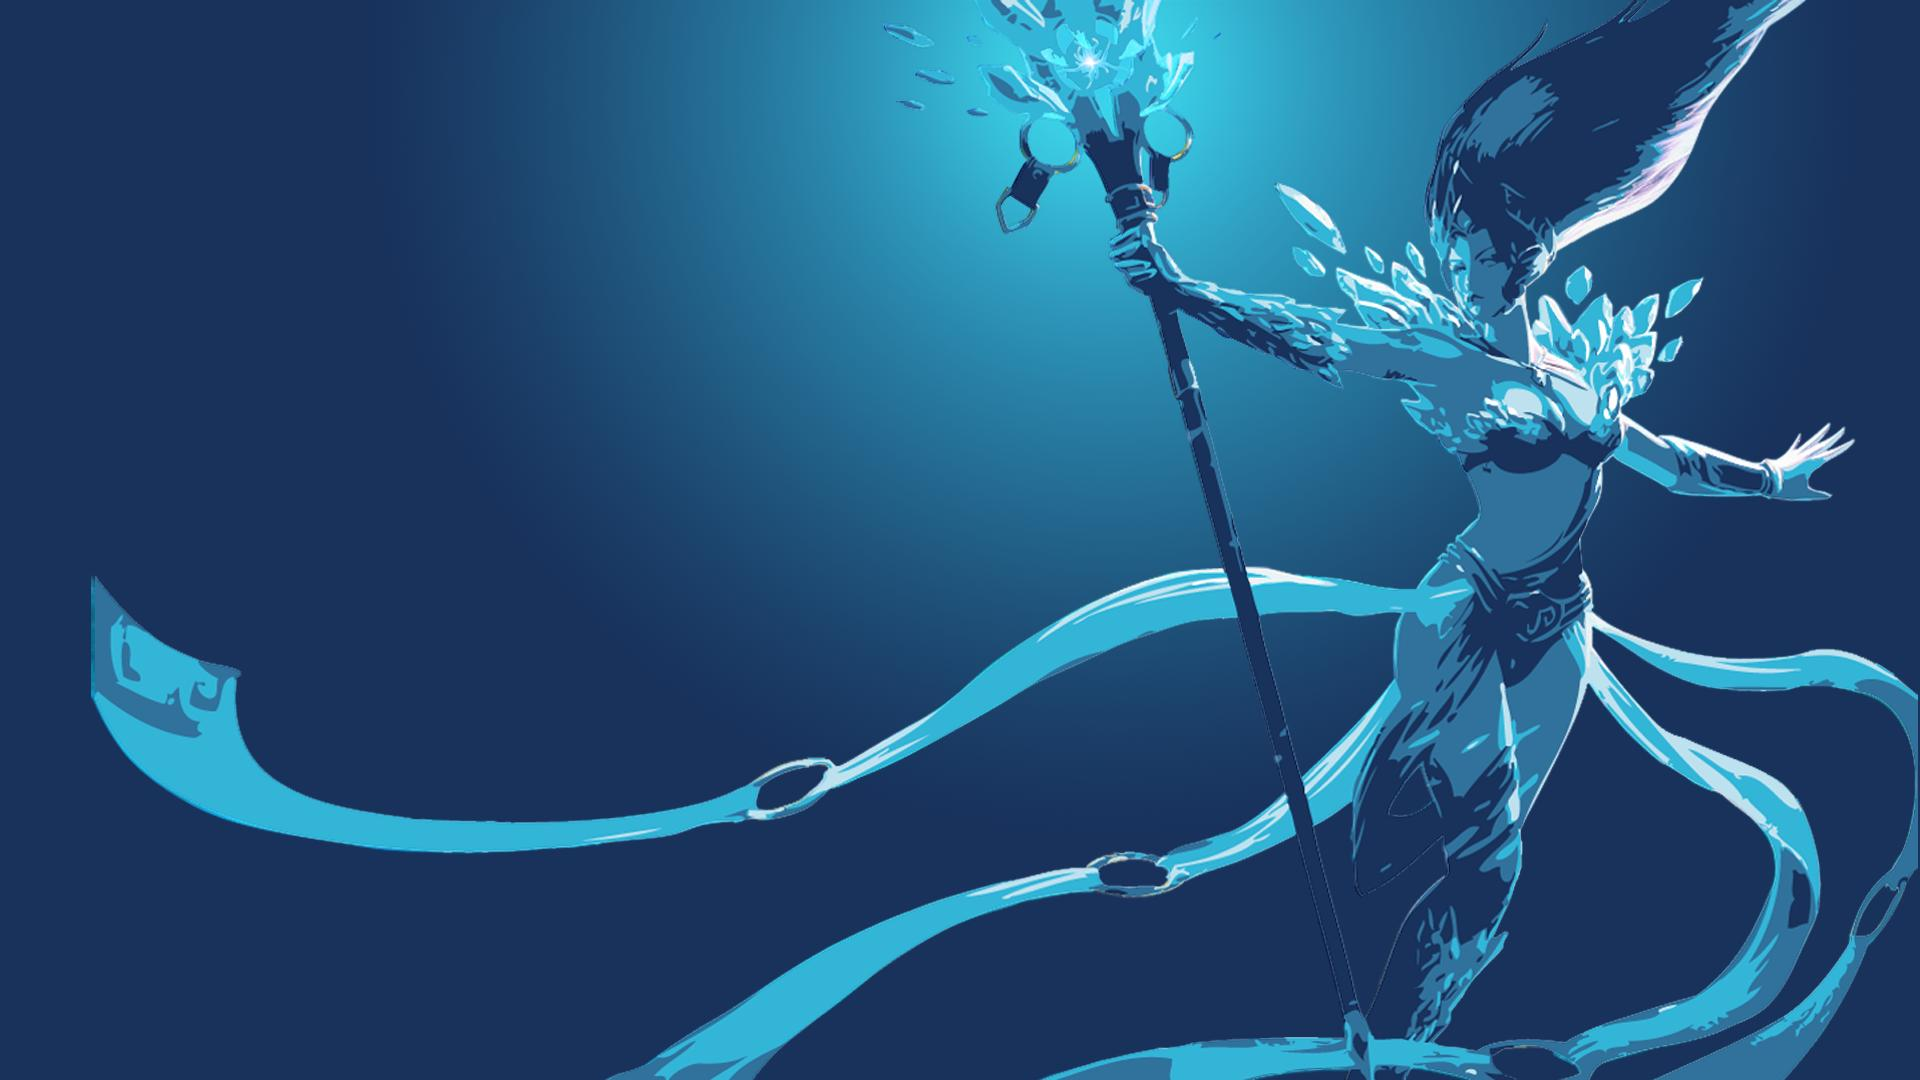 frost queen janna minimalistic lolwallpapers